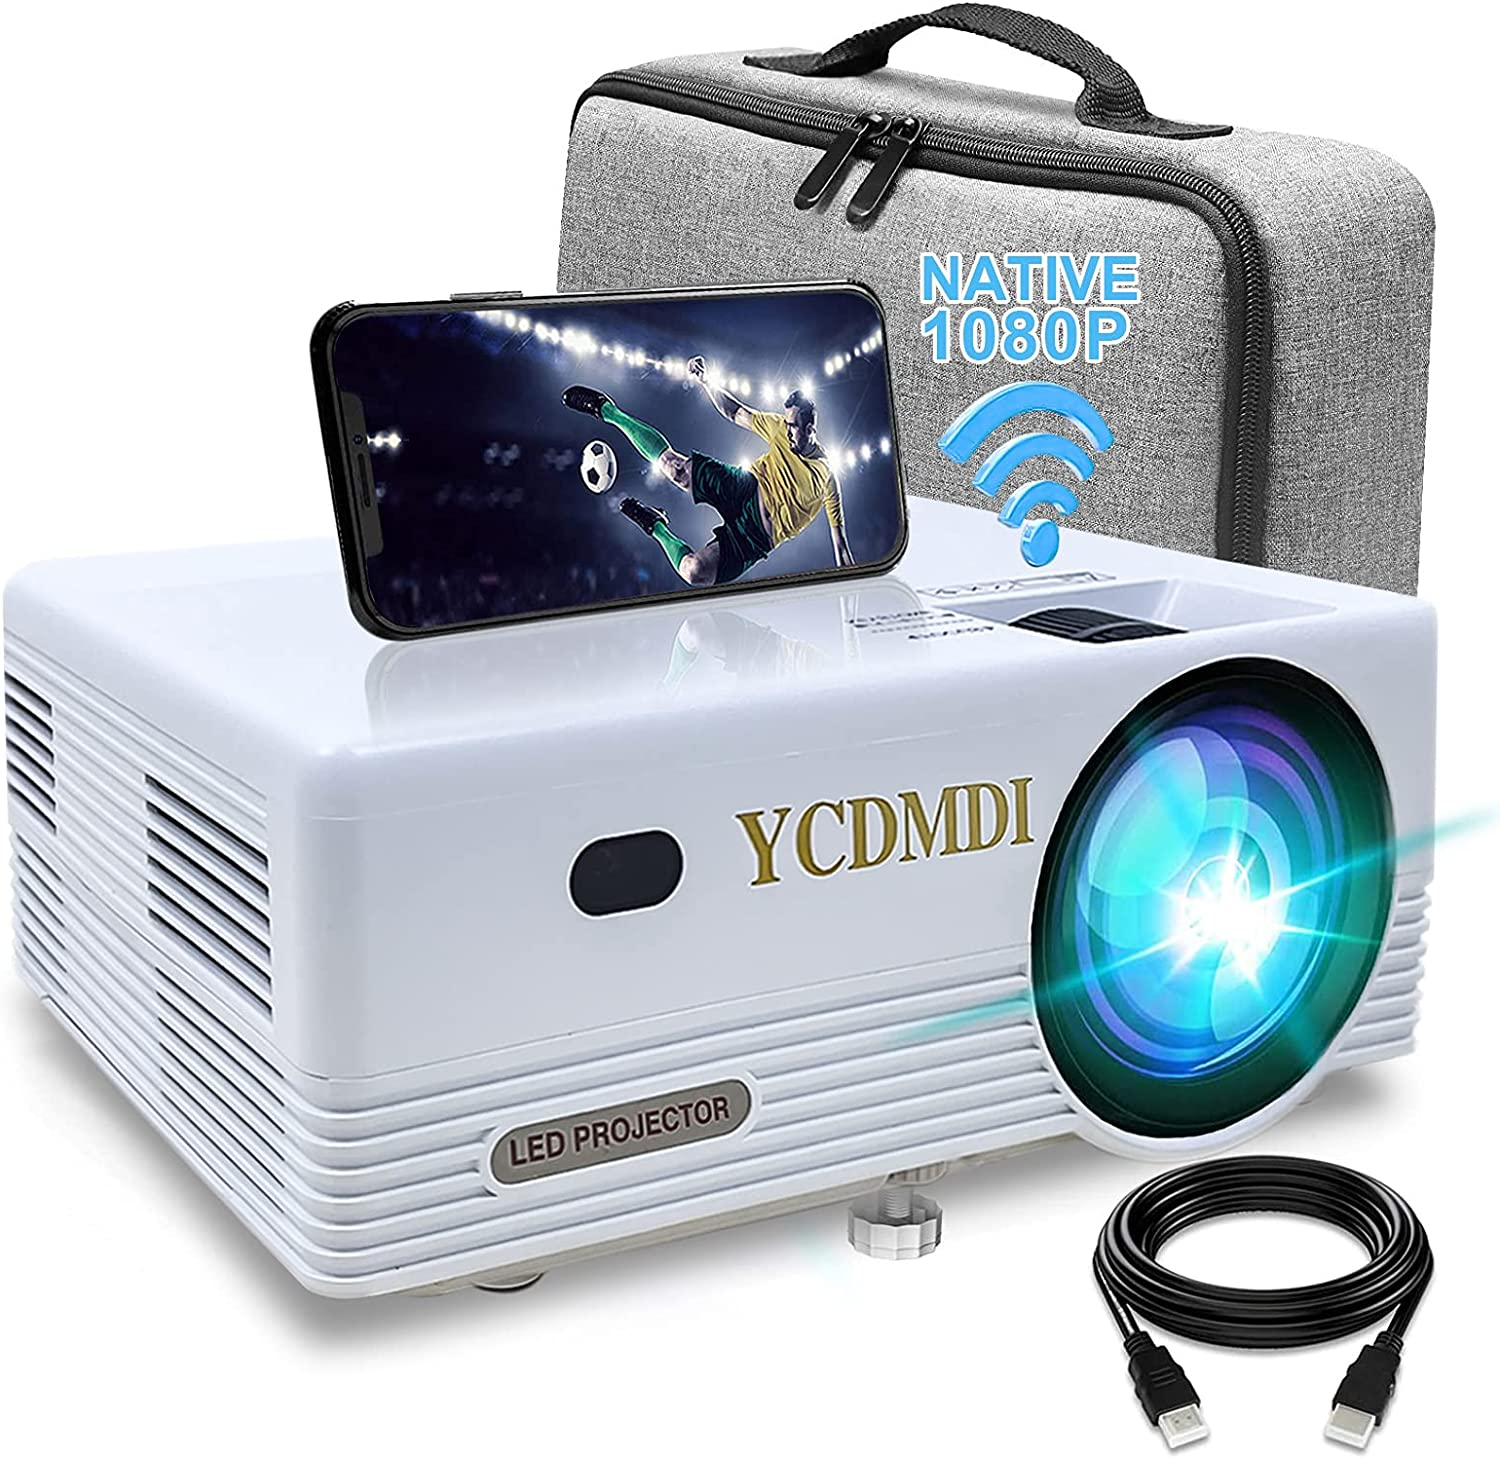 Native 5 ☆ very popular 1080P WiFi Projector YCDMDI Outlet SALE 8000L Movie Full HD Outdoor